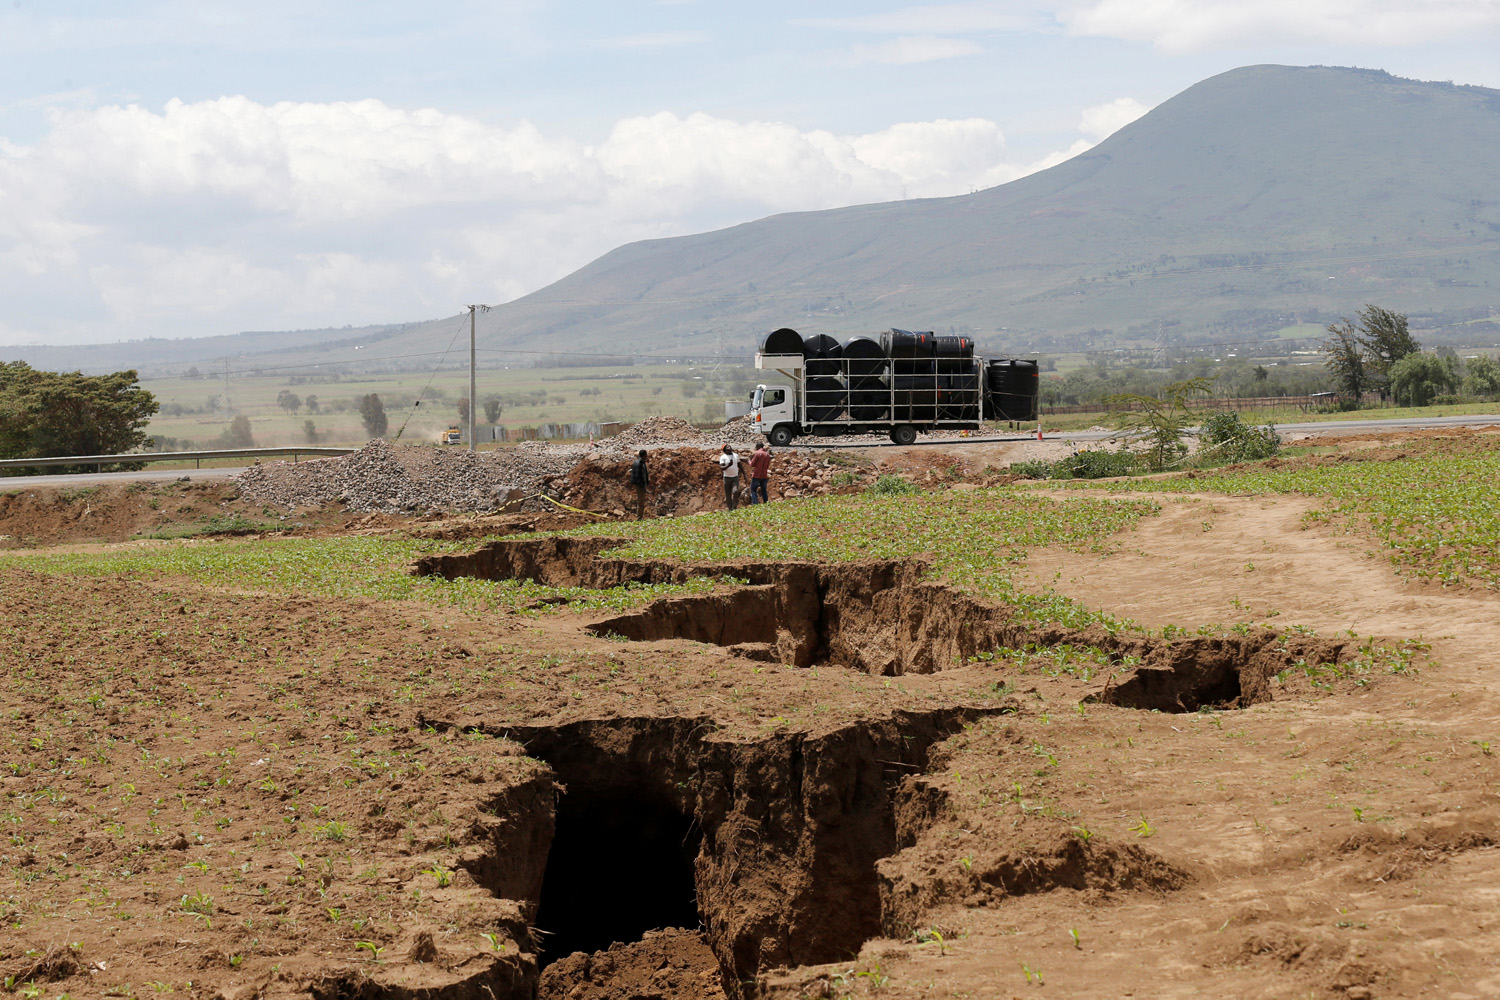 A truck drives near a chasm suspected to have been caused by a heavy downpour along an underground fault-line near the Rift Valley town of Mai Mahiu, Kenya March 28, 2018. Picture taken March 28, 2018. REUTERS/Thomas Mukoya